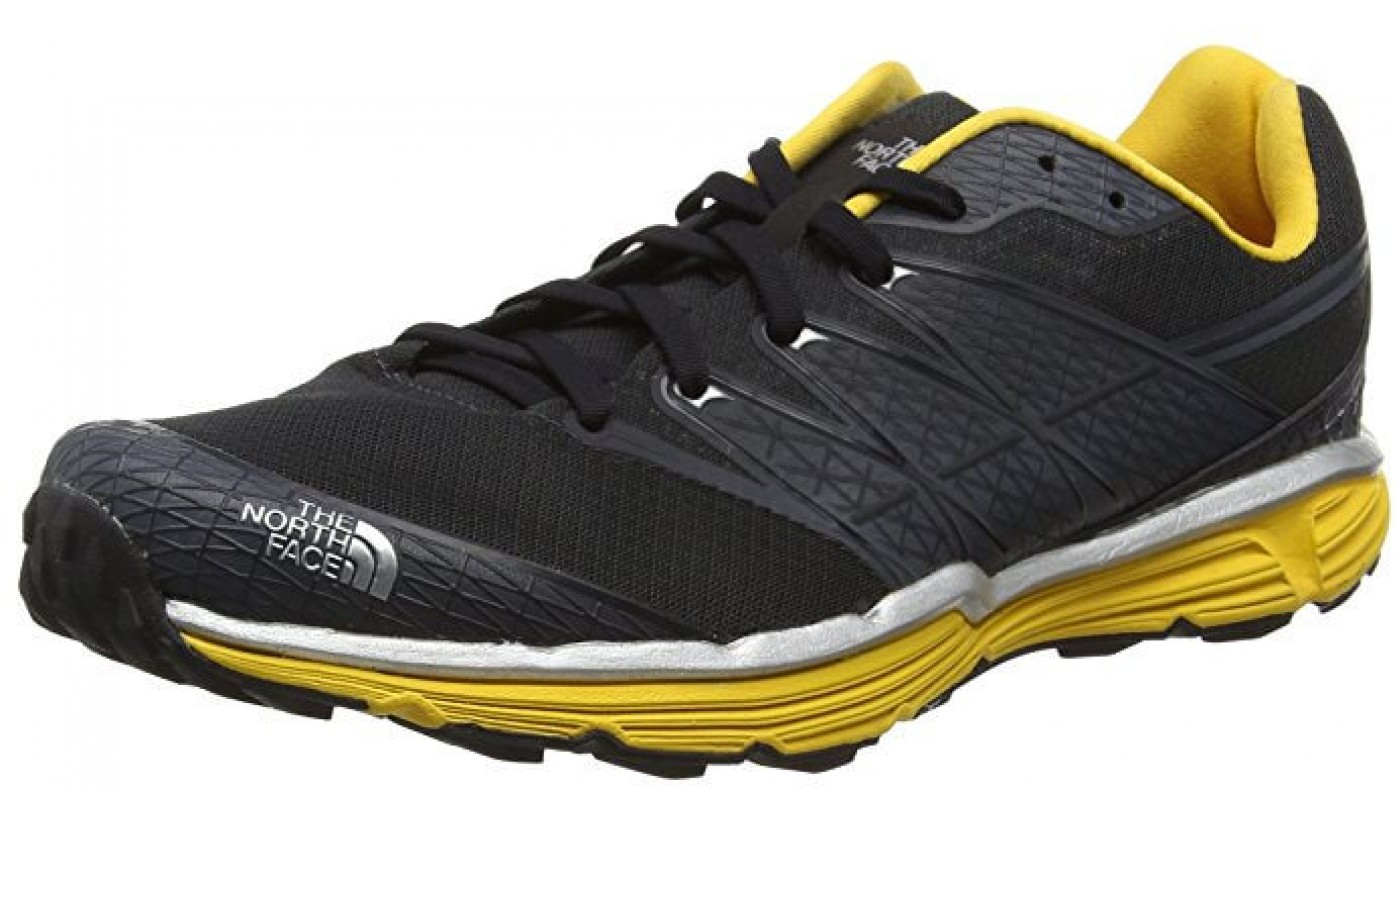 The North Face Litewave TR side angle